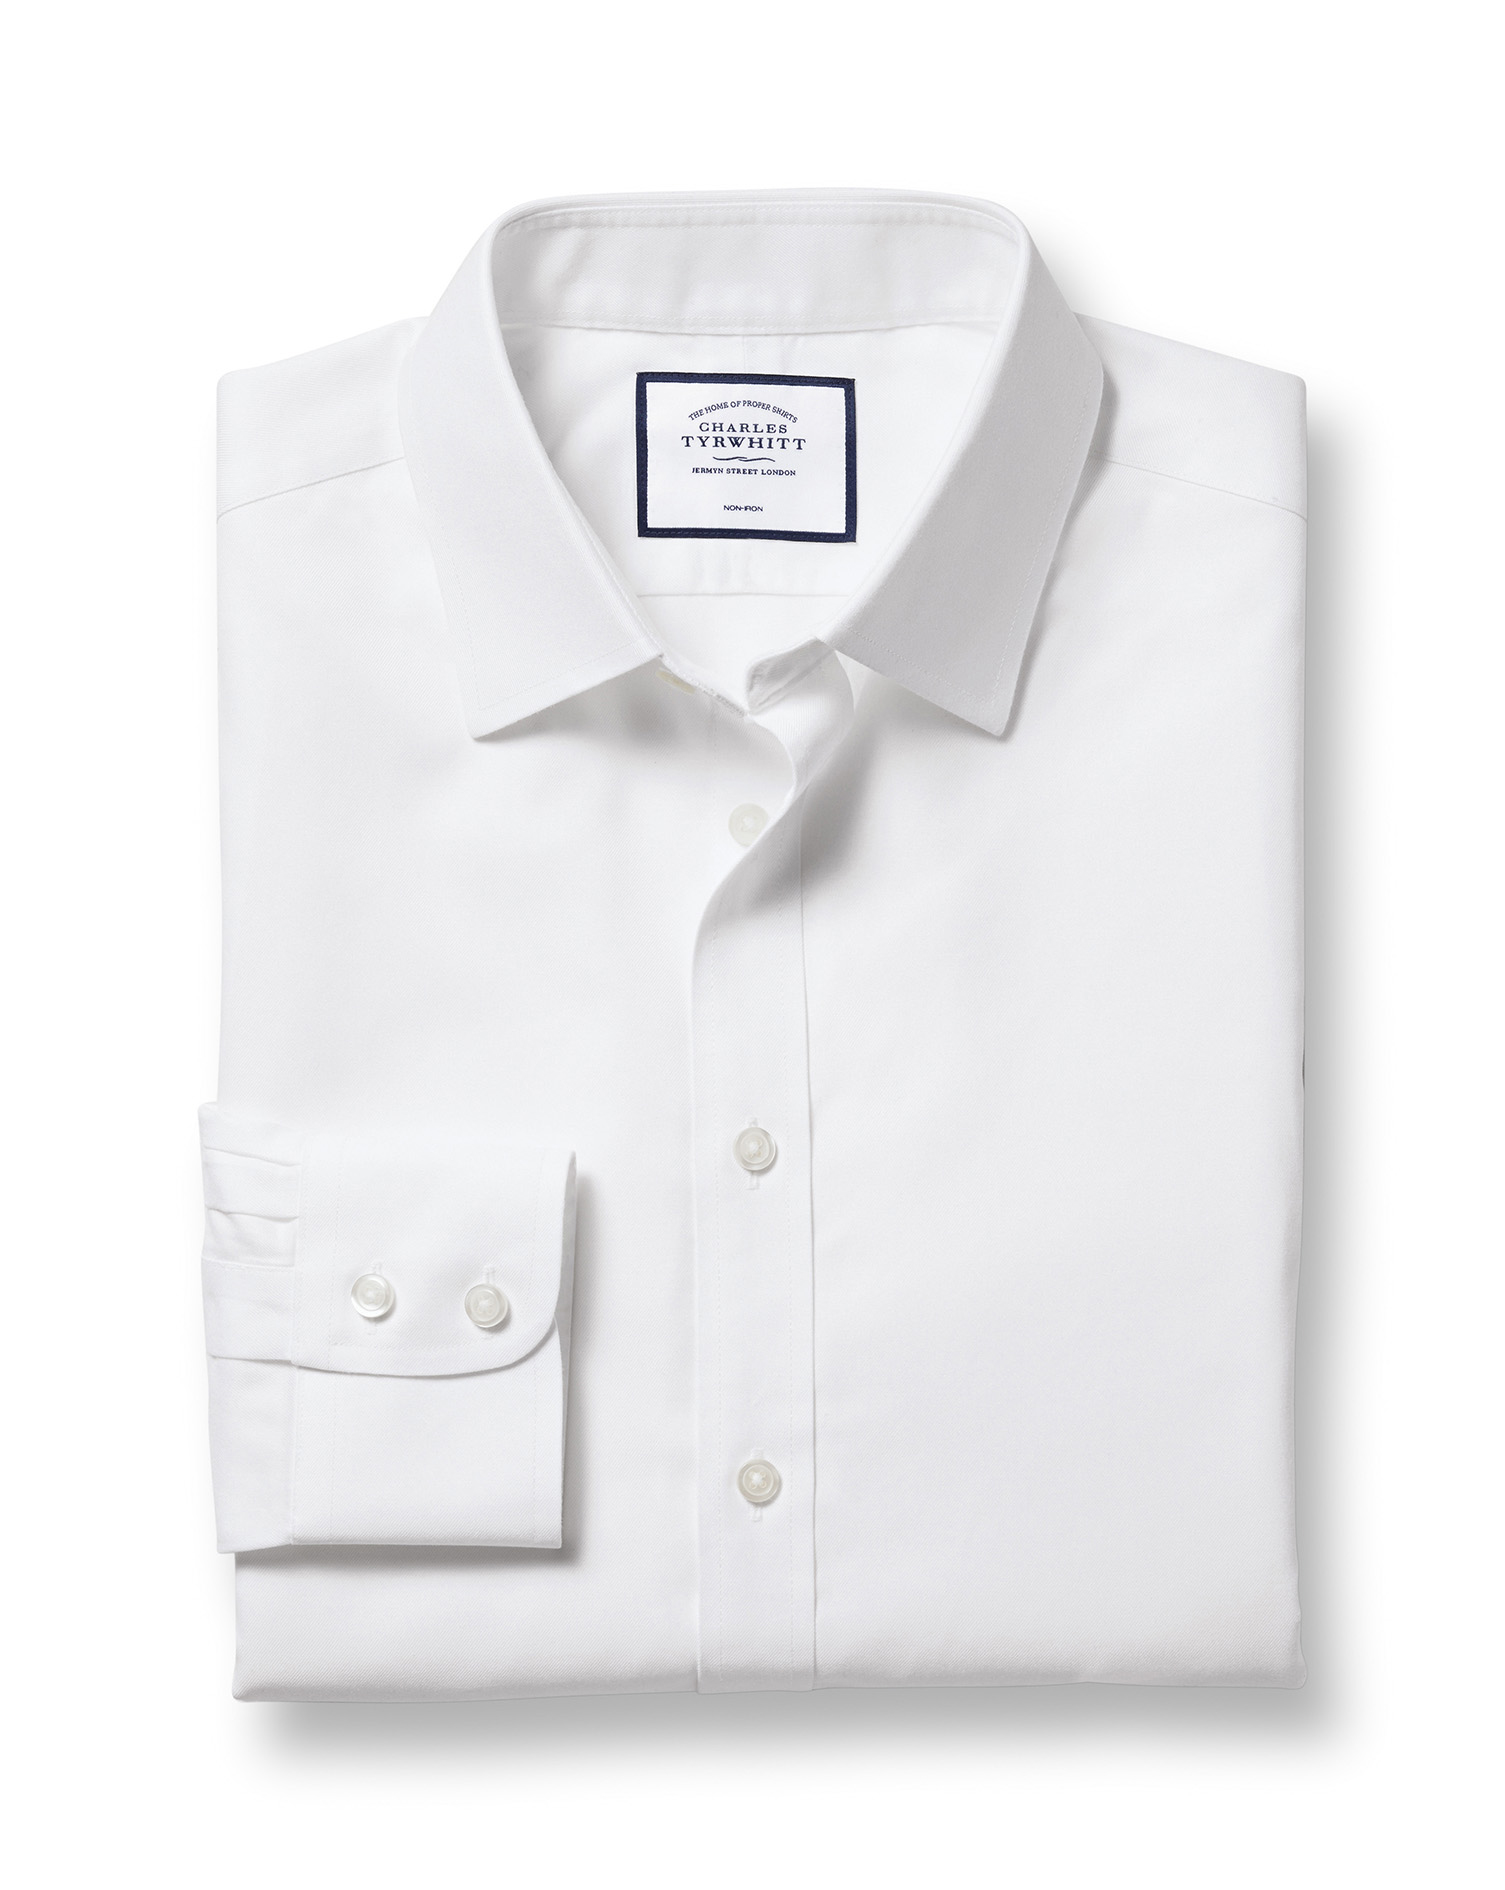 Slim Fit White Non-Iron Twill Cotton Formal Shirt Double Cuff Size 15.5/34 by Charles Tyrwhitt